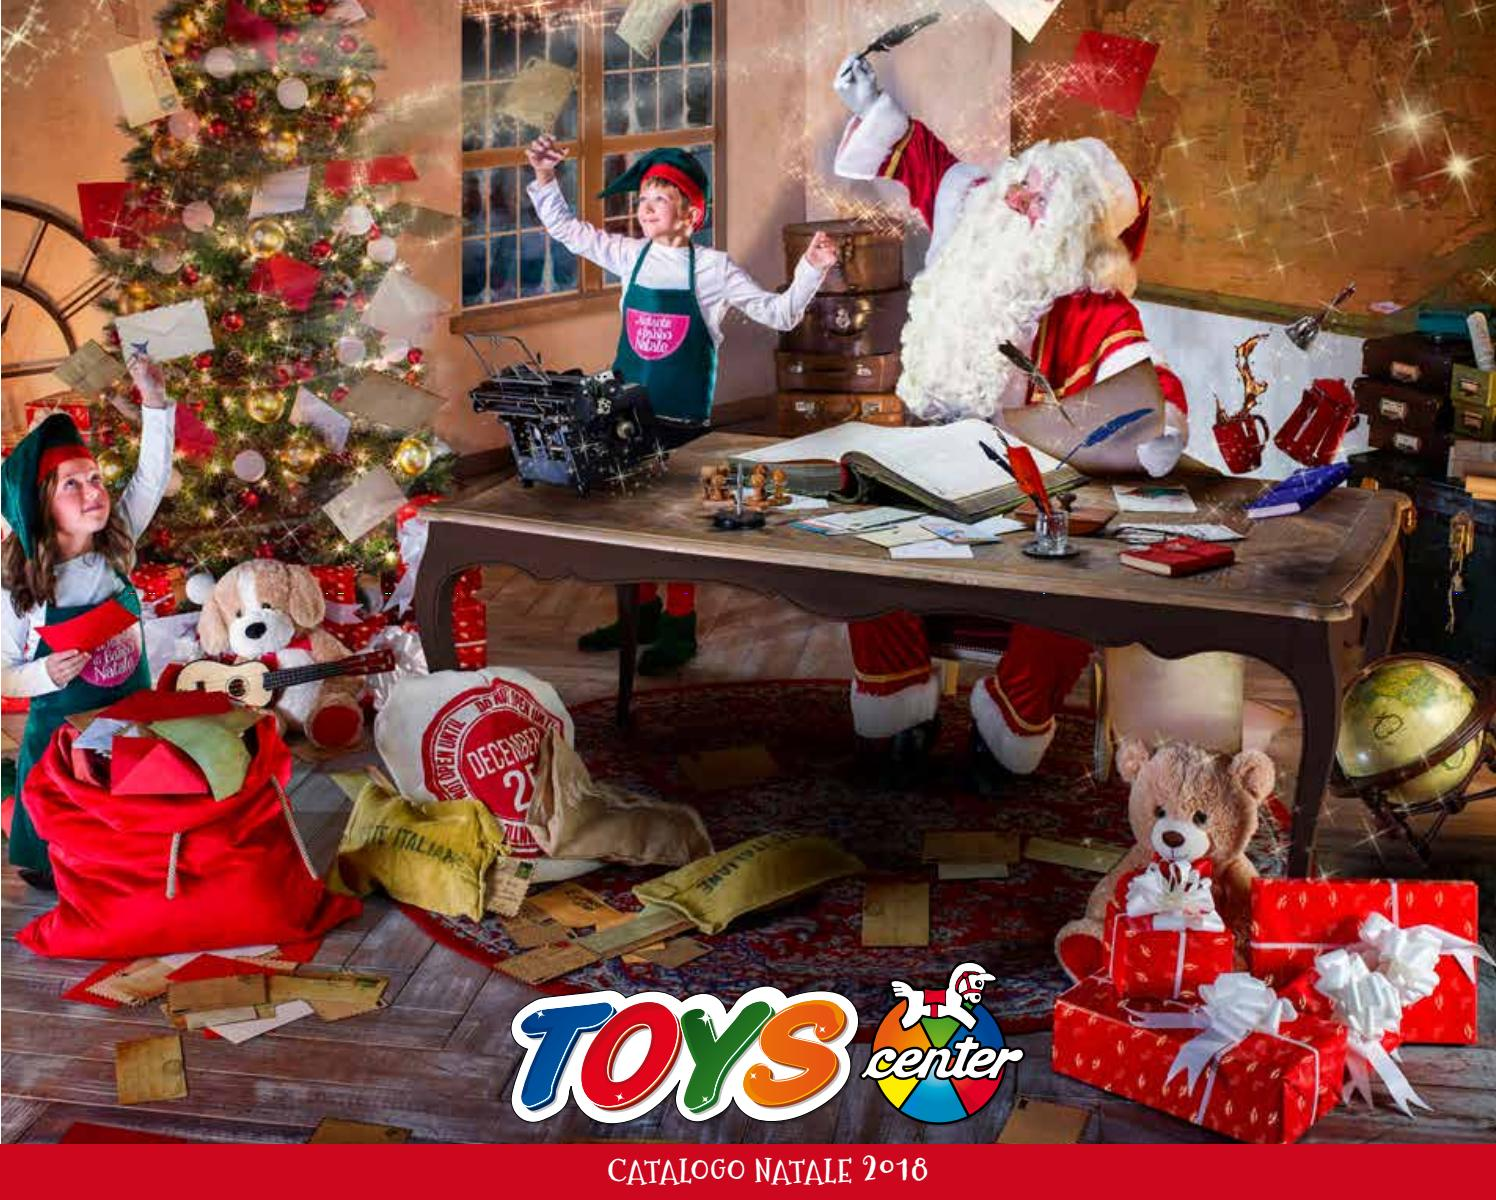 Catalogo Natale 2018 By Toyscenter Issuu